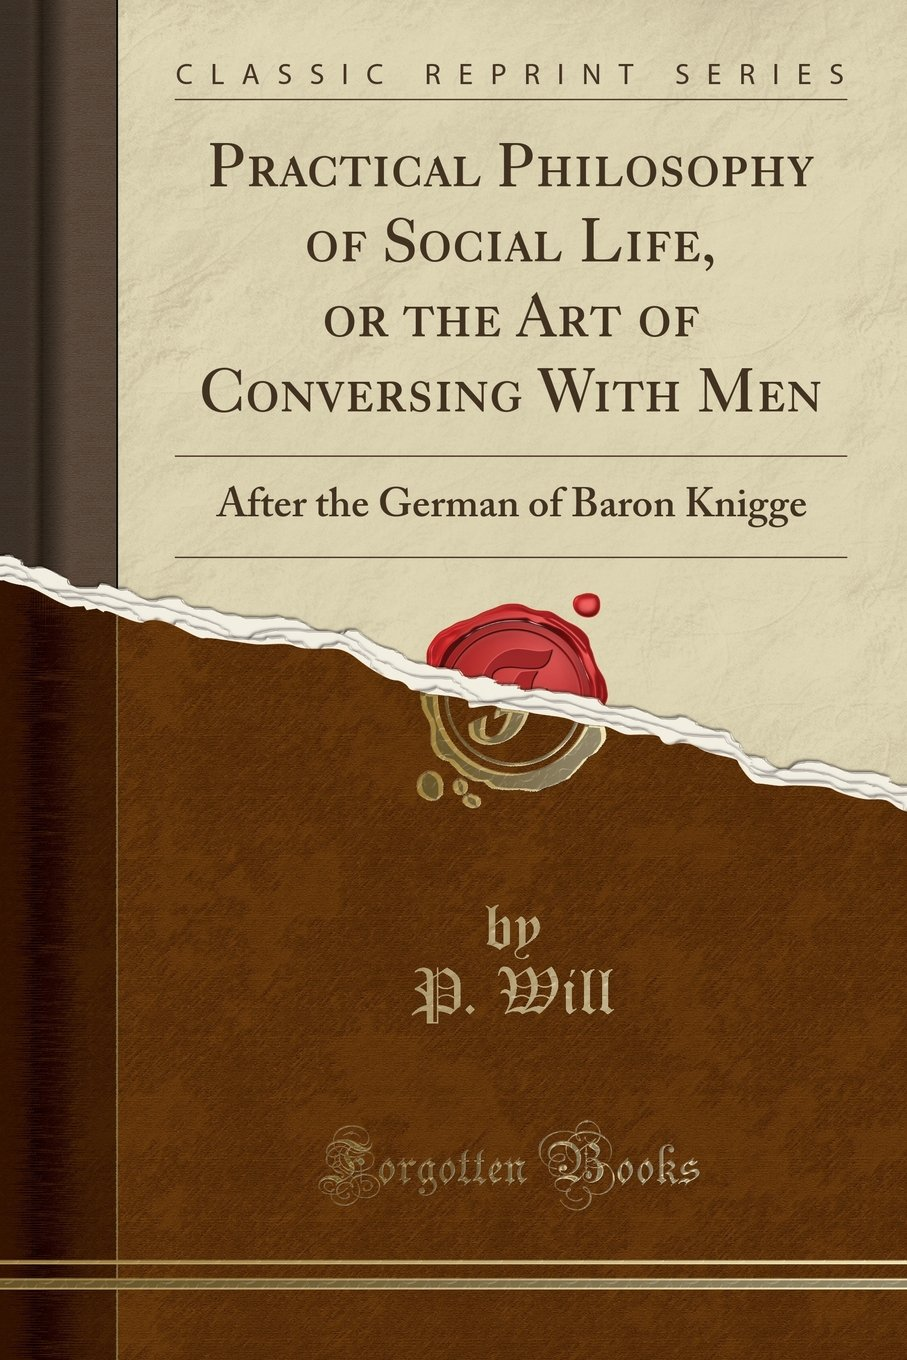 Practical Philosophy of Social Life, or the Art of Conversing With Men: After the German of Baron Knigge (Classic Reprint) PDF